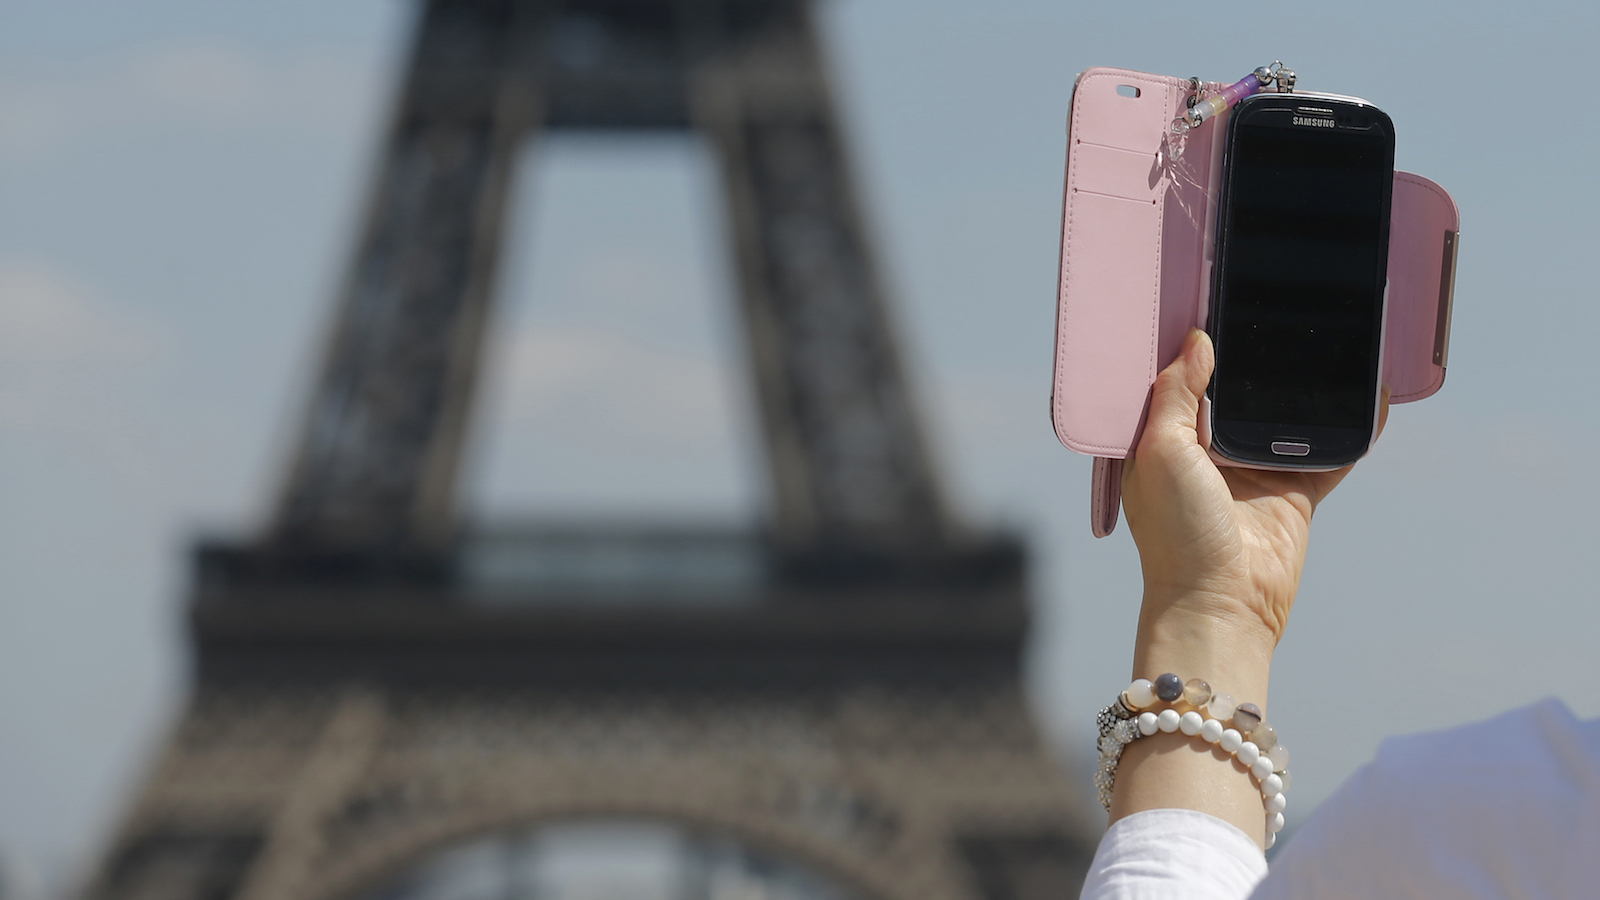 A woman uses her mobile phone to take a selfie picture at the Trocadero Square near the Eiffel Tower in Paris